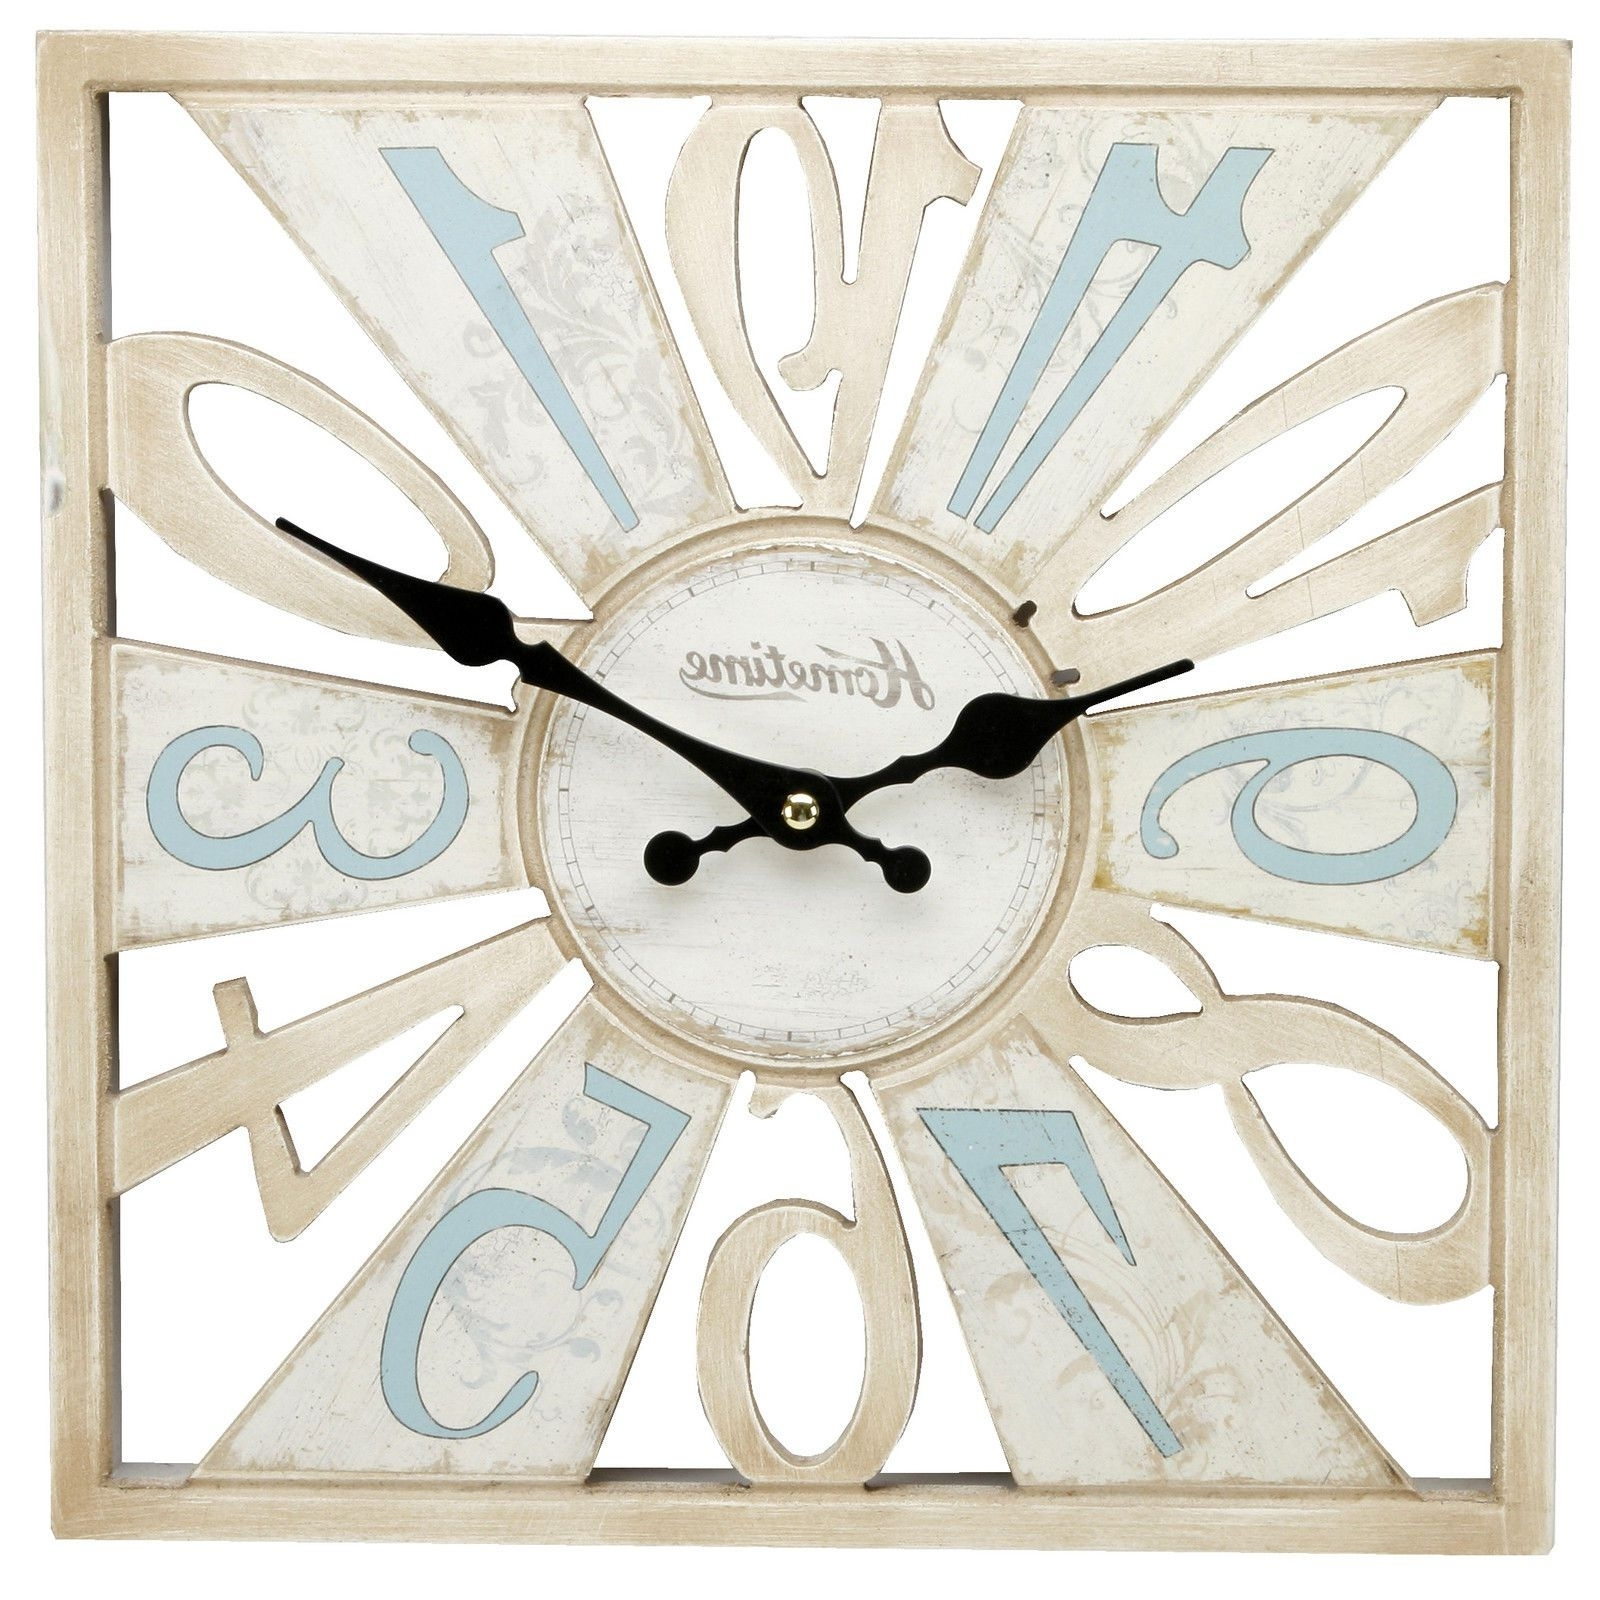 Newest Cut Out Wooden Wall Clock Duck Egg Blue & Cream Shabby Chic Wall With Duck Egg Blue Wall Art (Gallery 4 of 15)